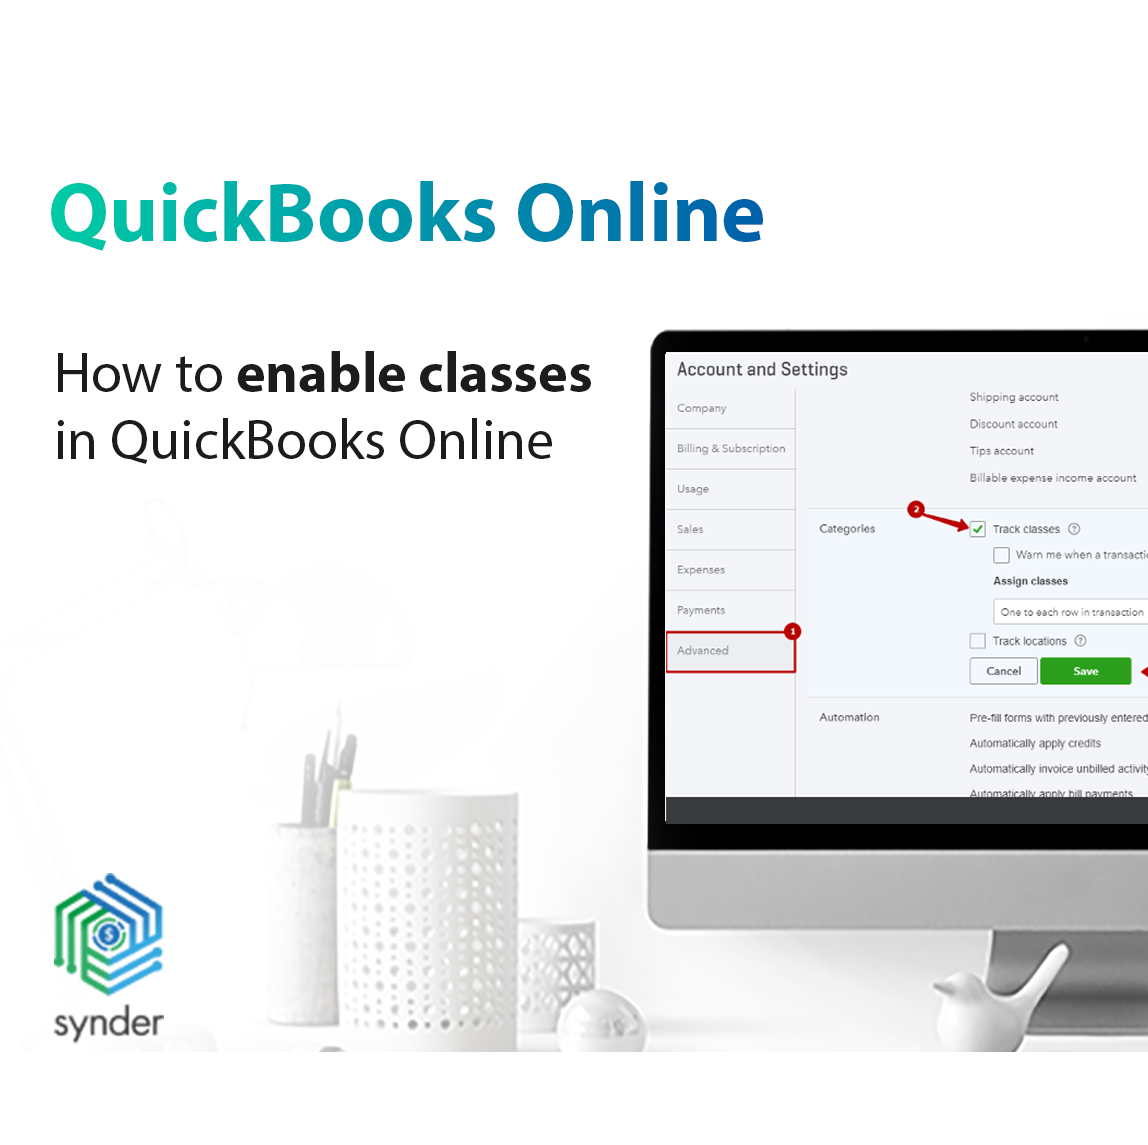 Enables classes in QuickBooks Online